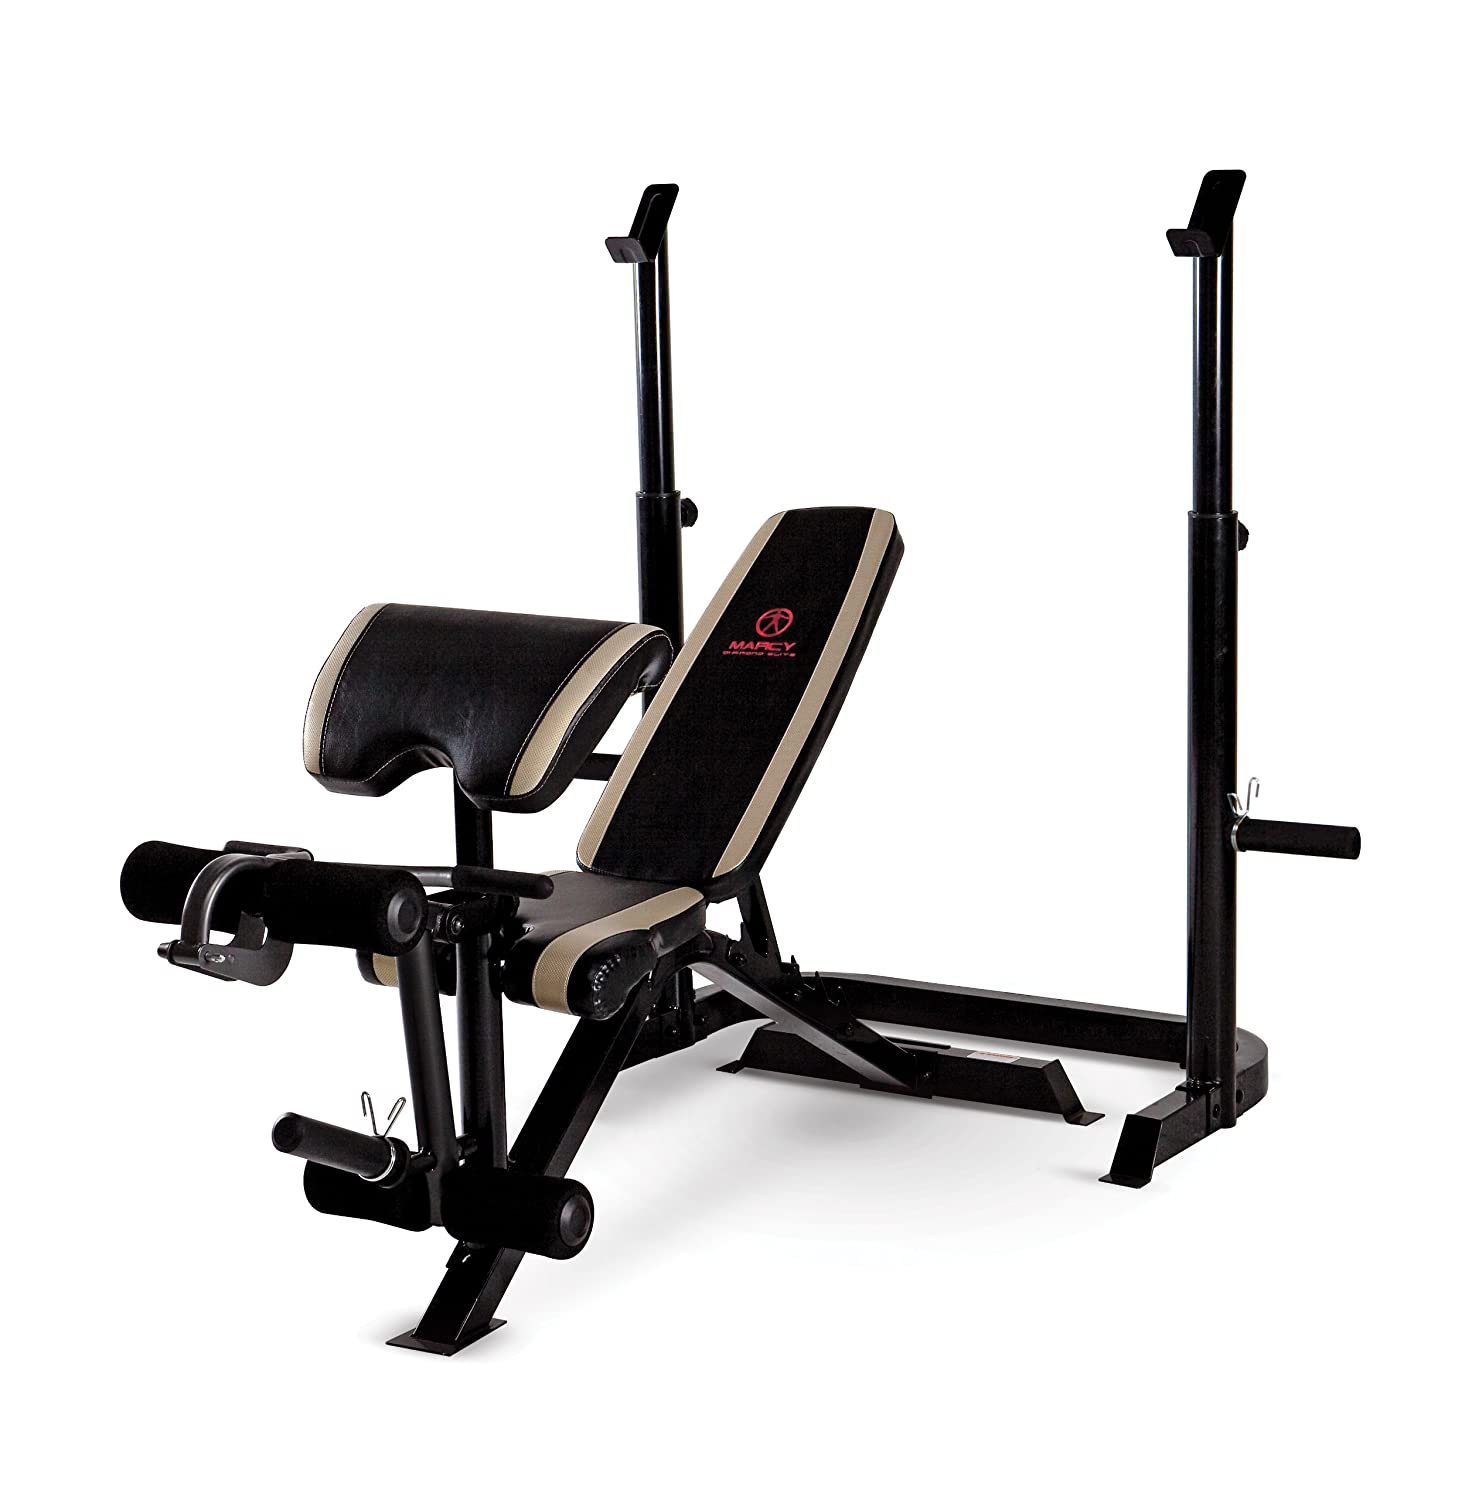 Marcy Adjustable Utility Bench Review 2017 Sb670 Olympic Bench